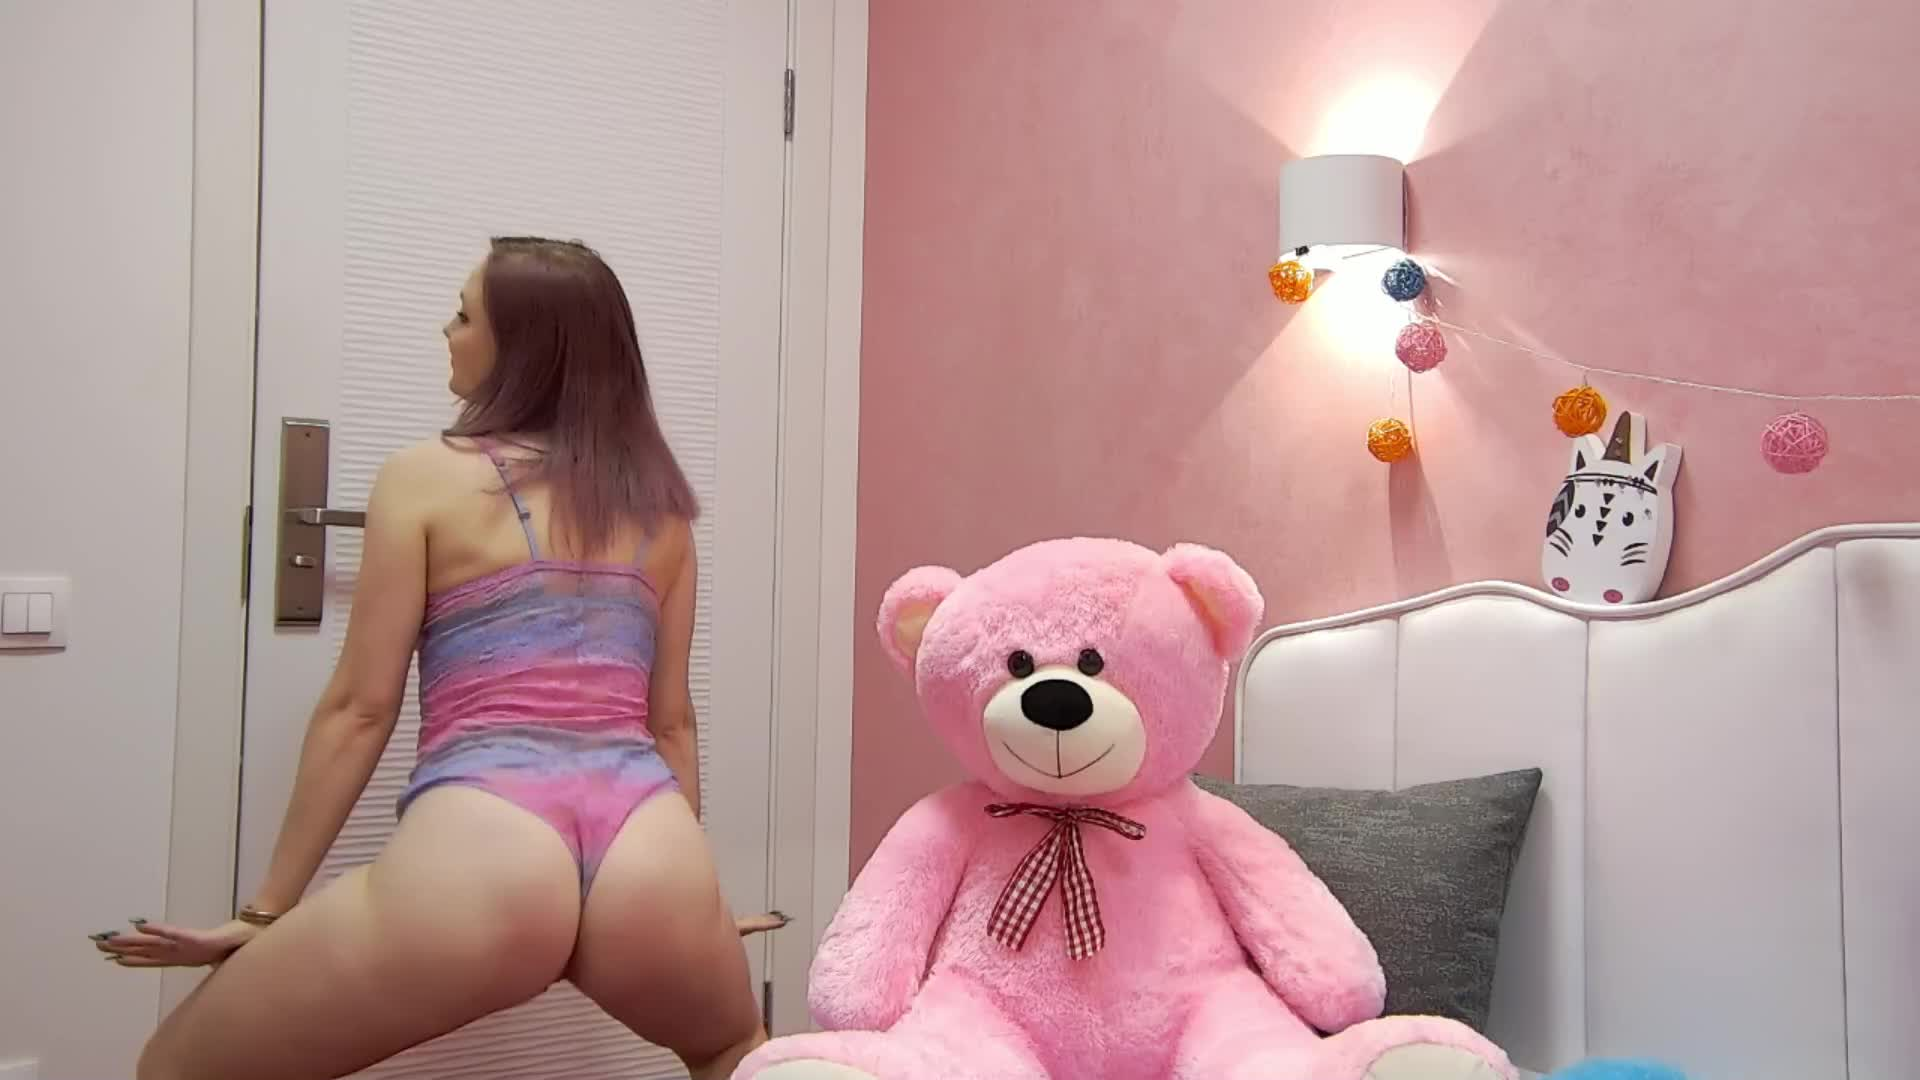 Lally_Pop cam pics and nude photos 13